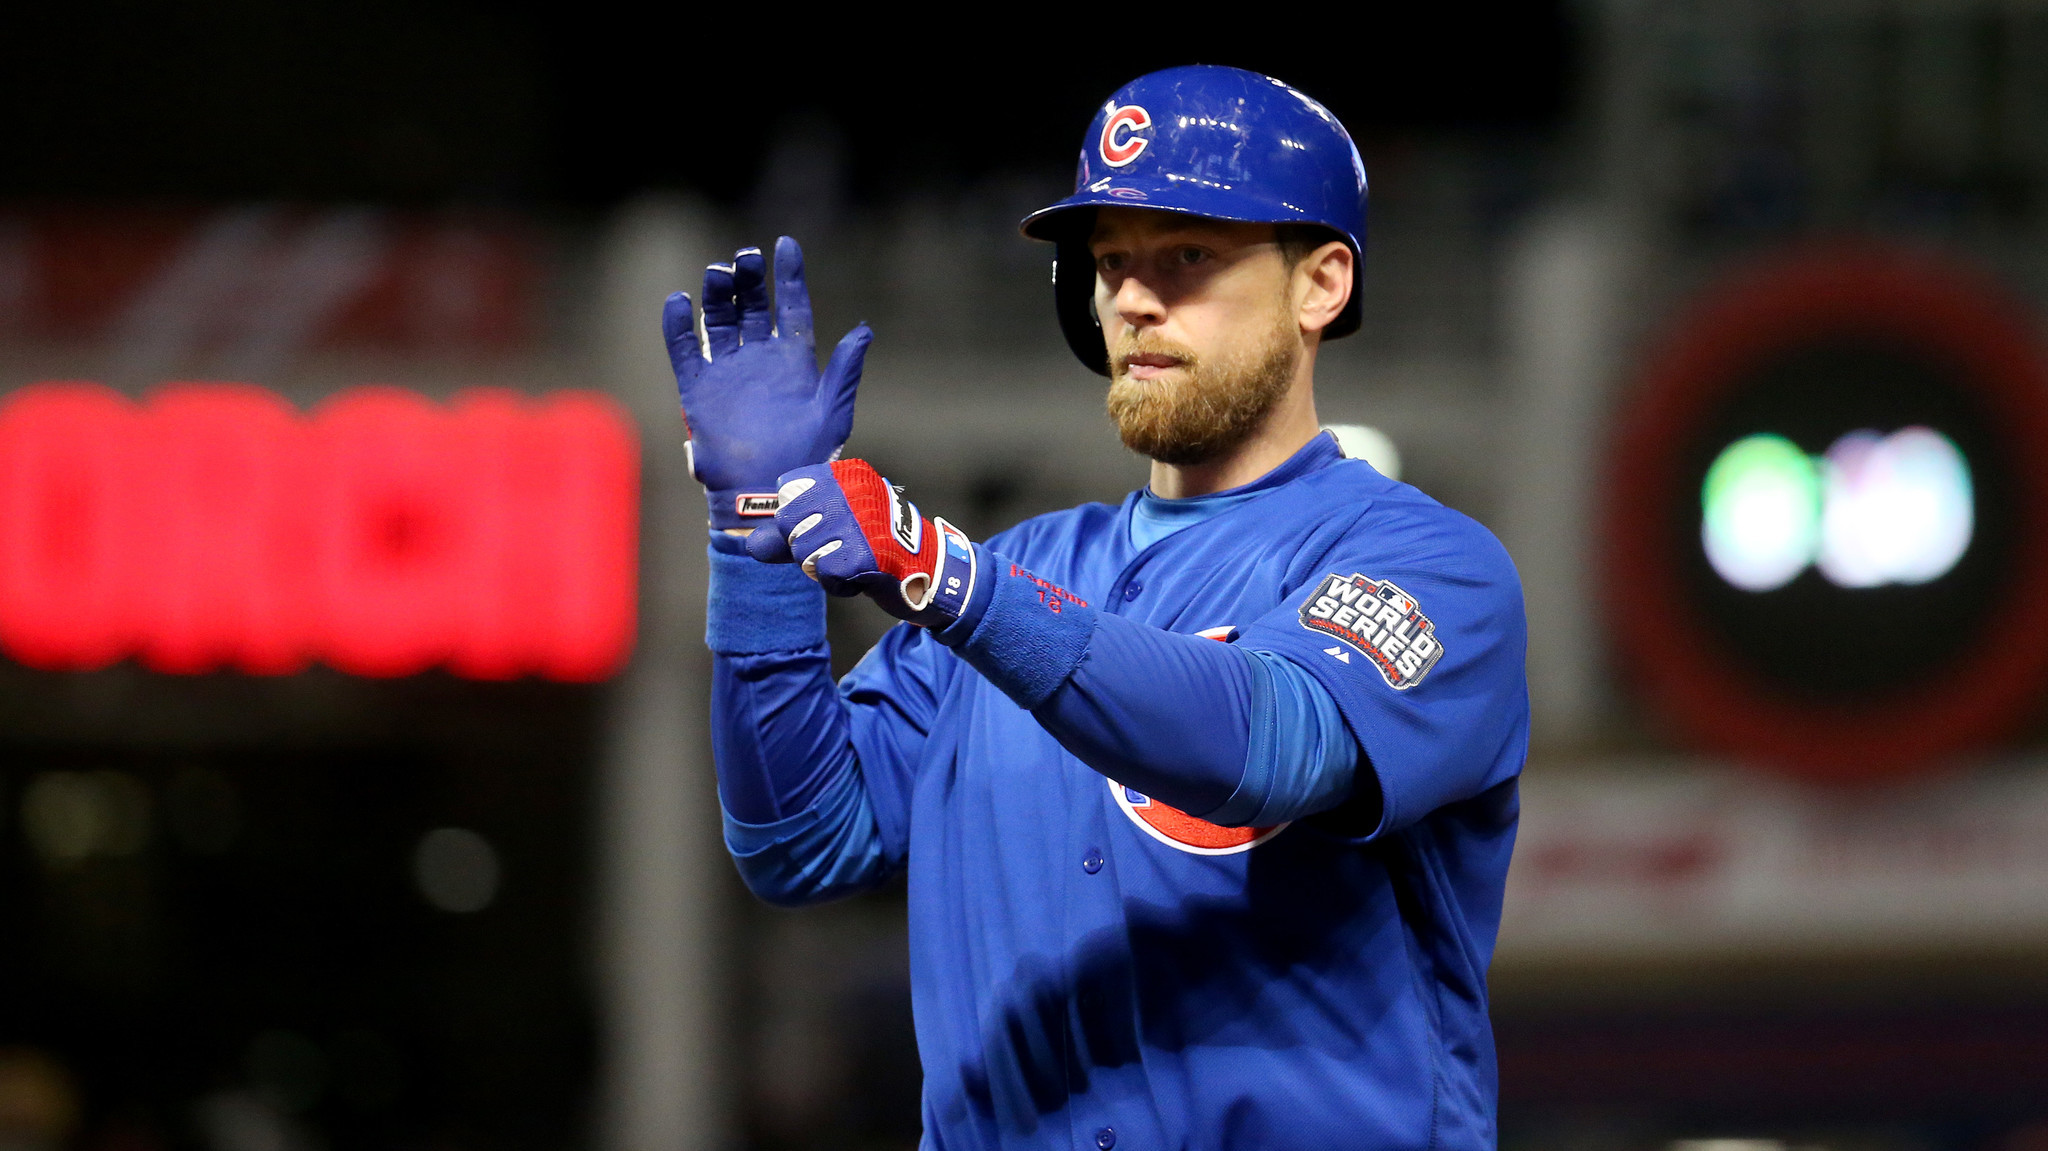 Zobrist already has 5 hits in the Fall Classic, two for extra bases